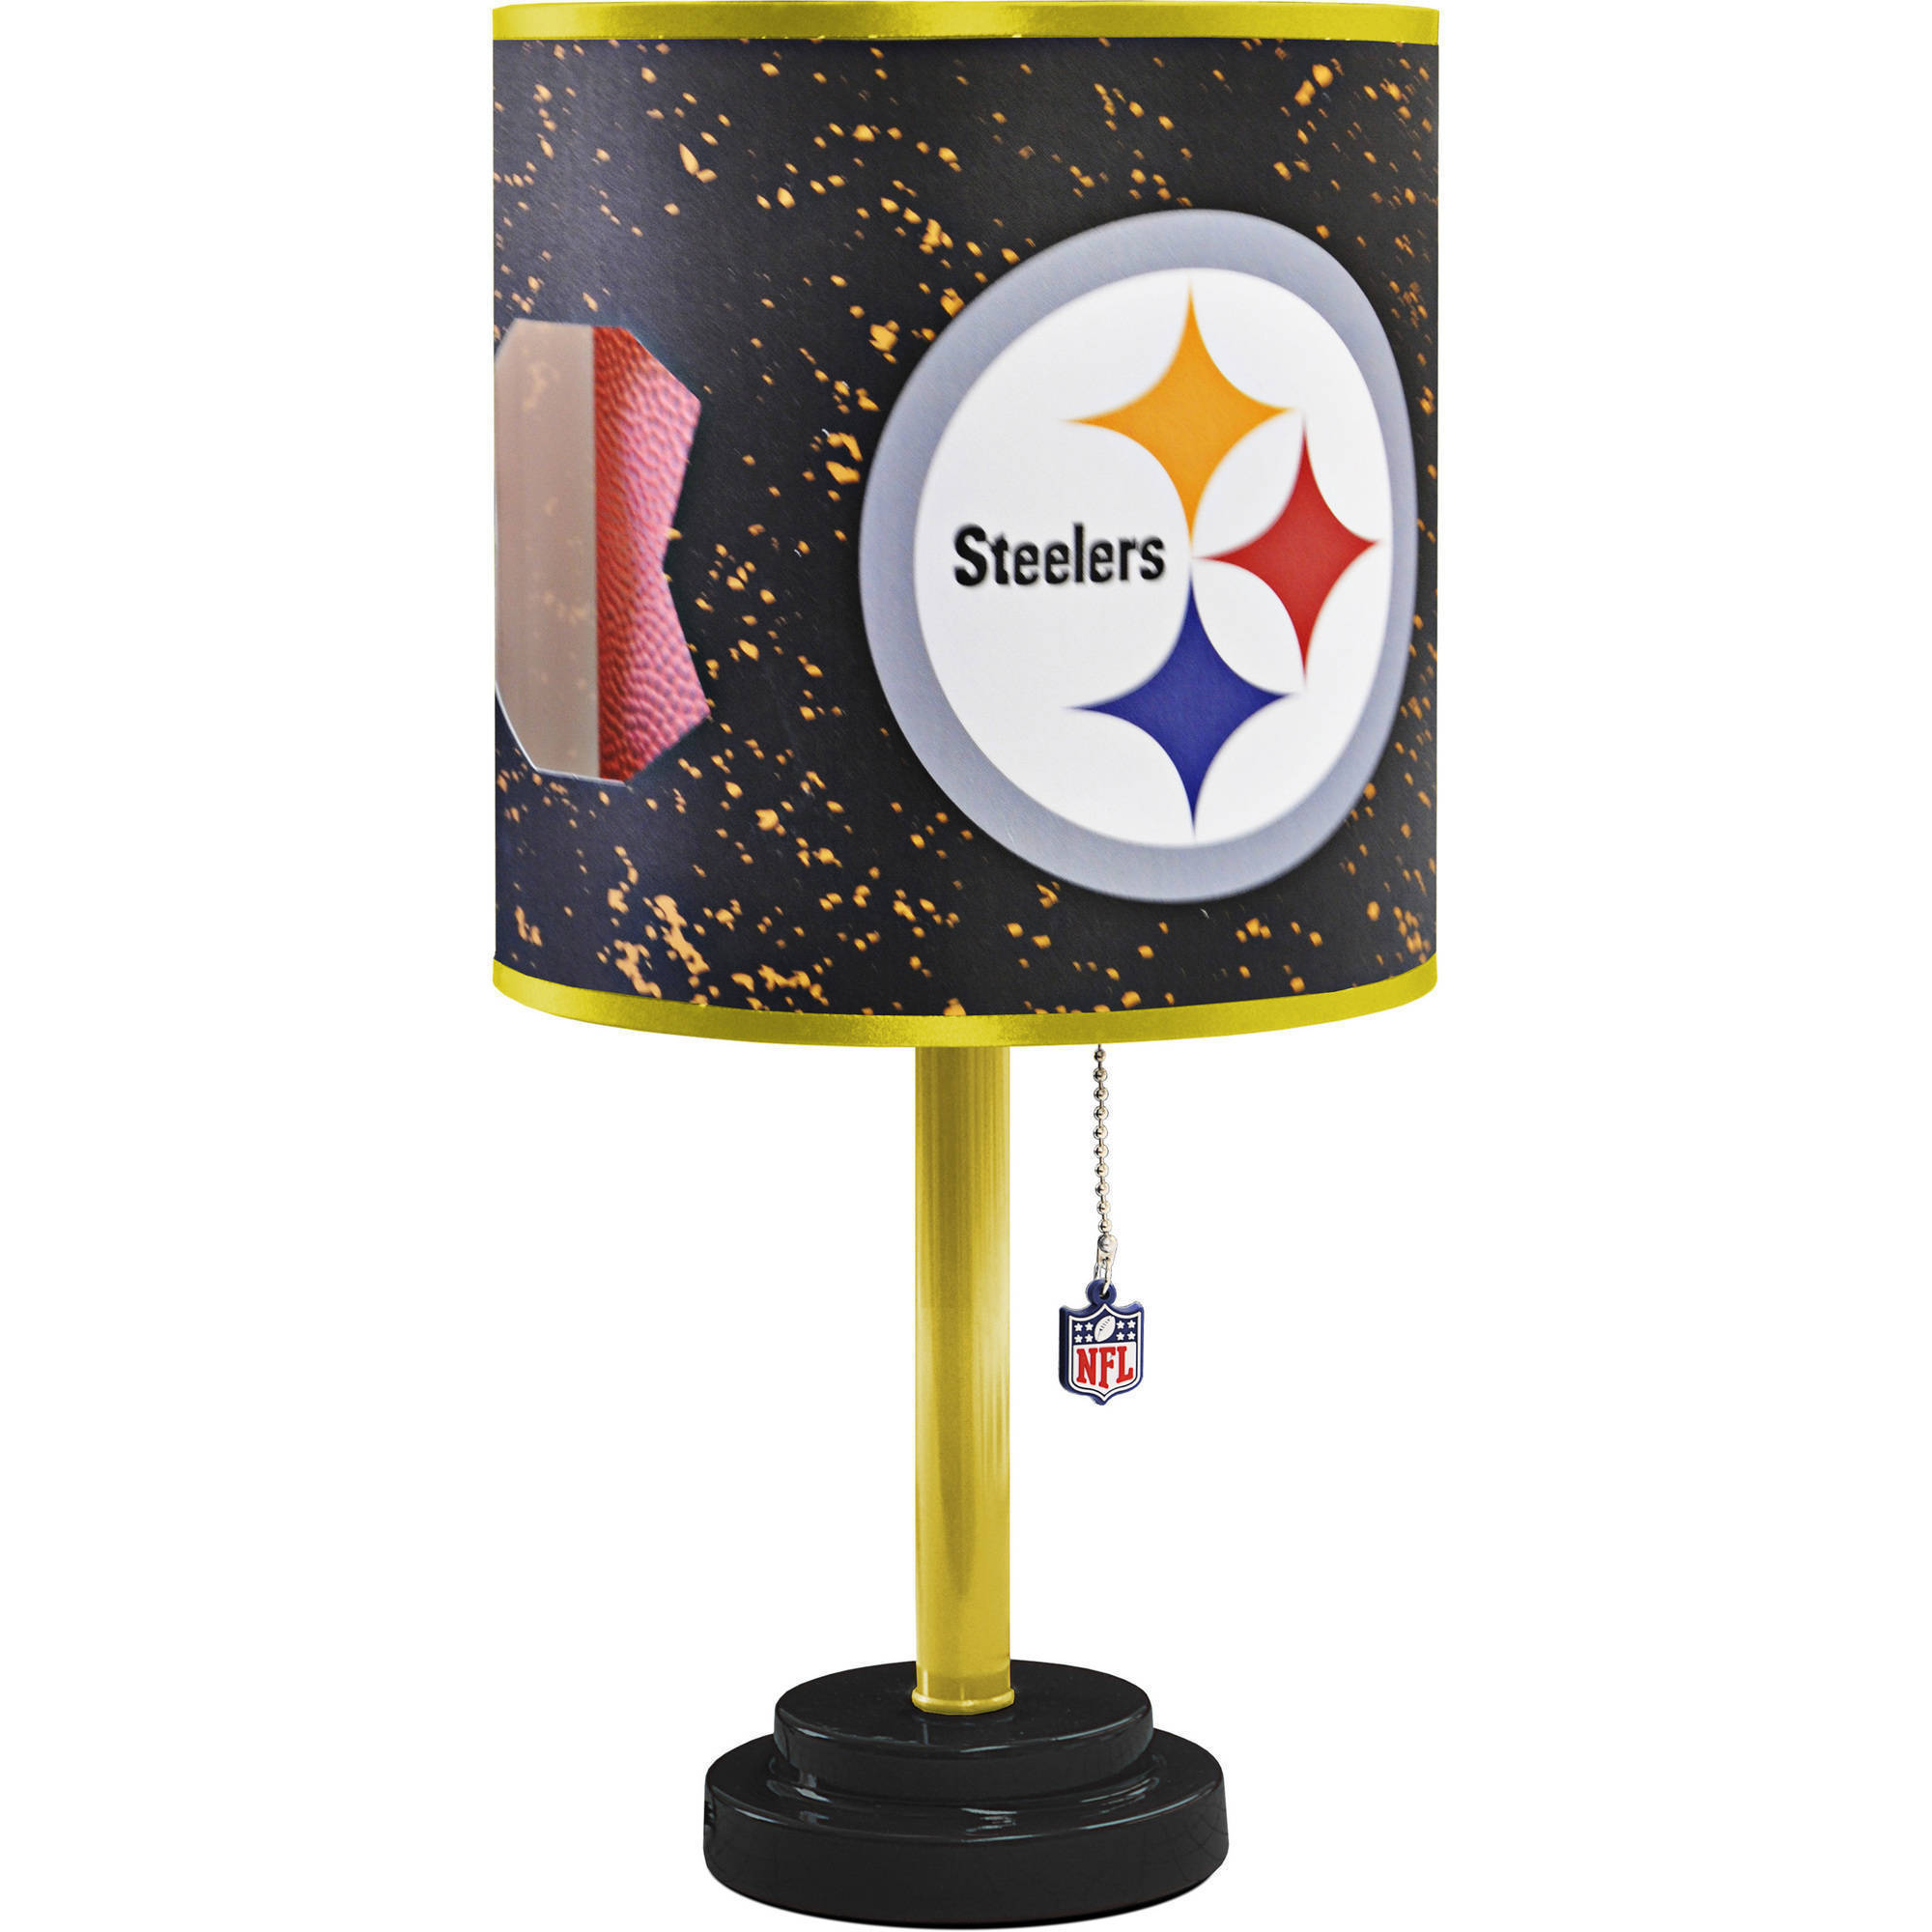 Pittsburgh Steelers Die-Cut Table Lamp